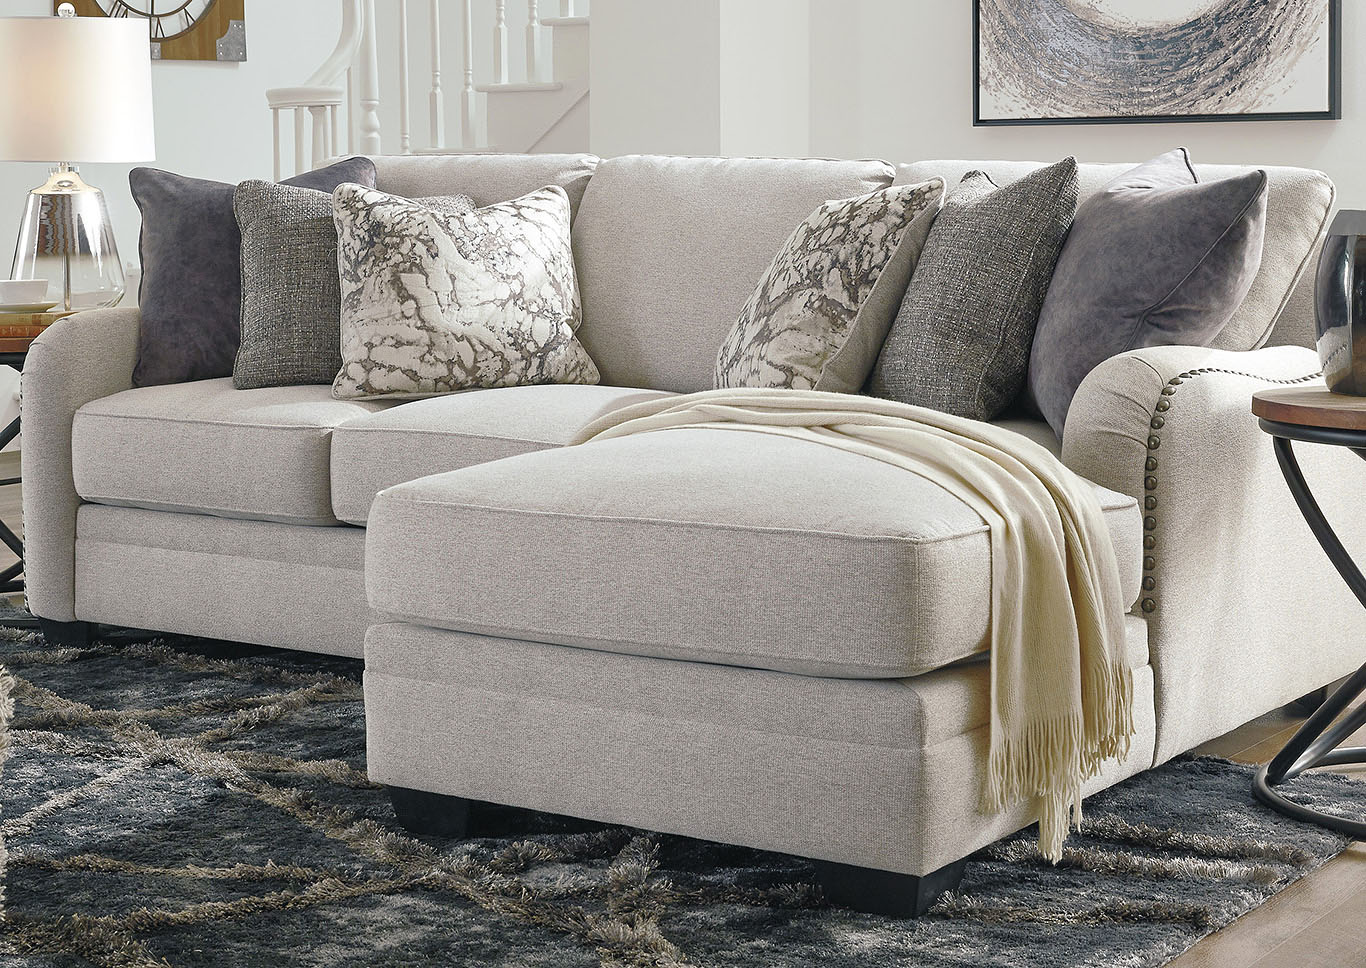 Dellara Chalk RAF Chaise Sectional,Benchcraft